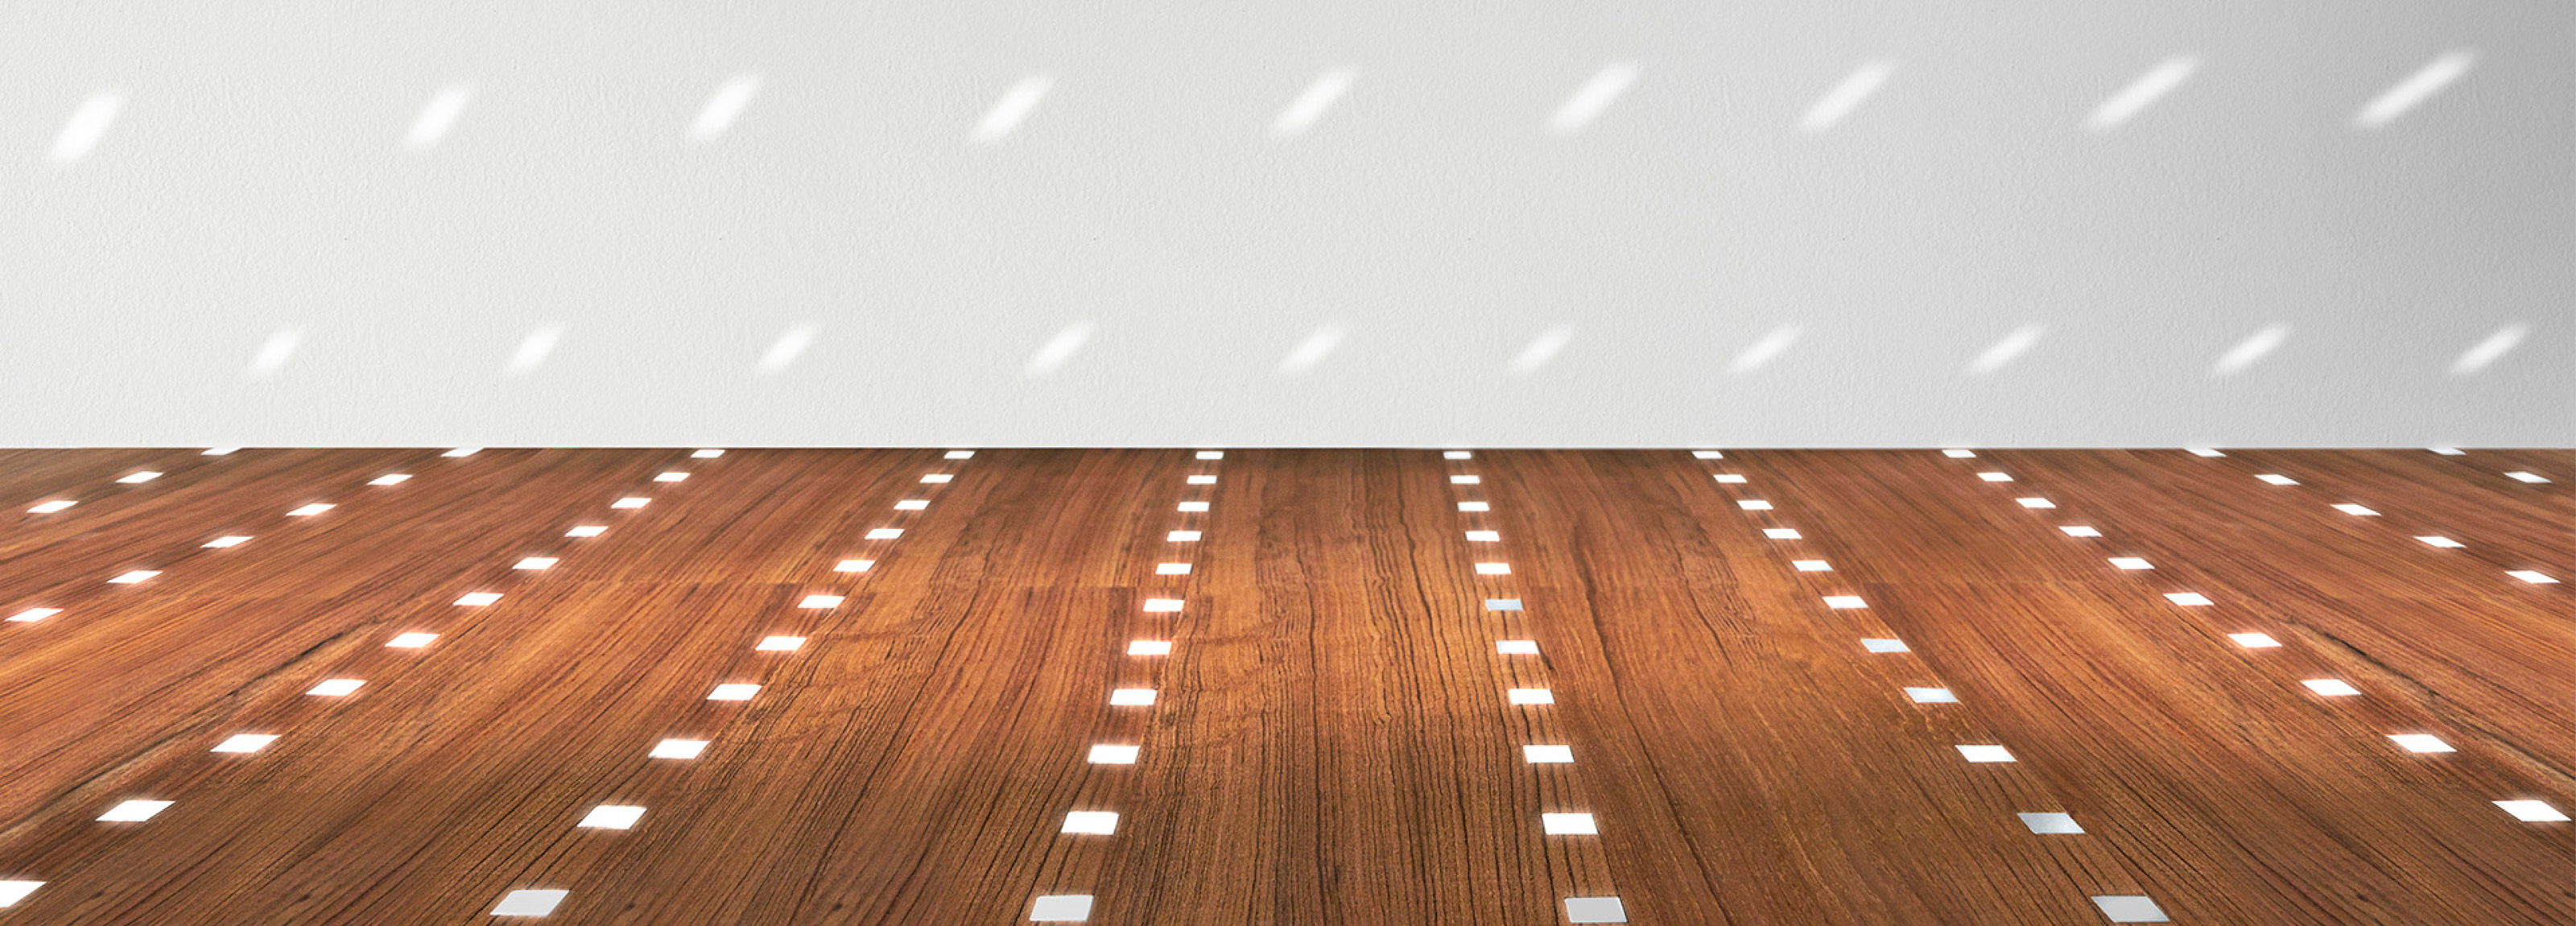 Listone Giordano - Listone Giordano <br> Stellar: new light on flooring surfaces